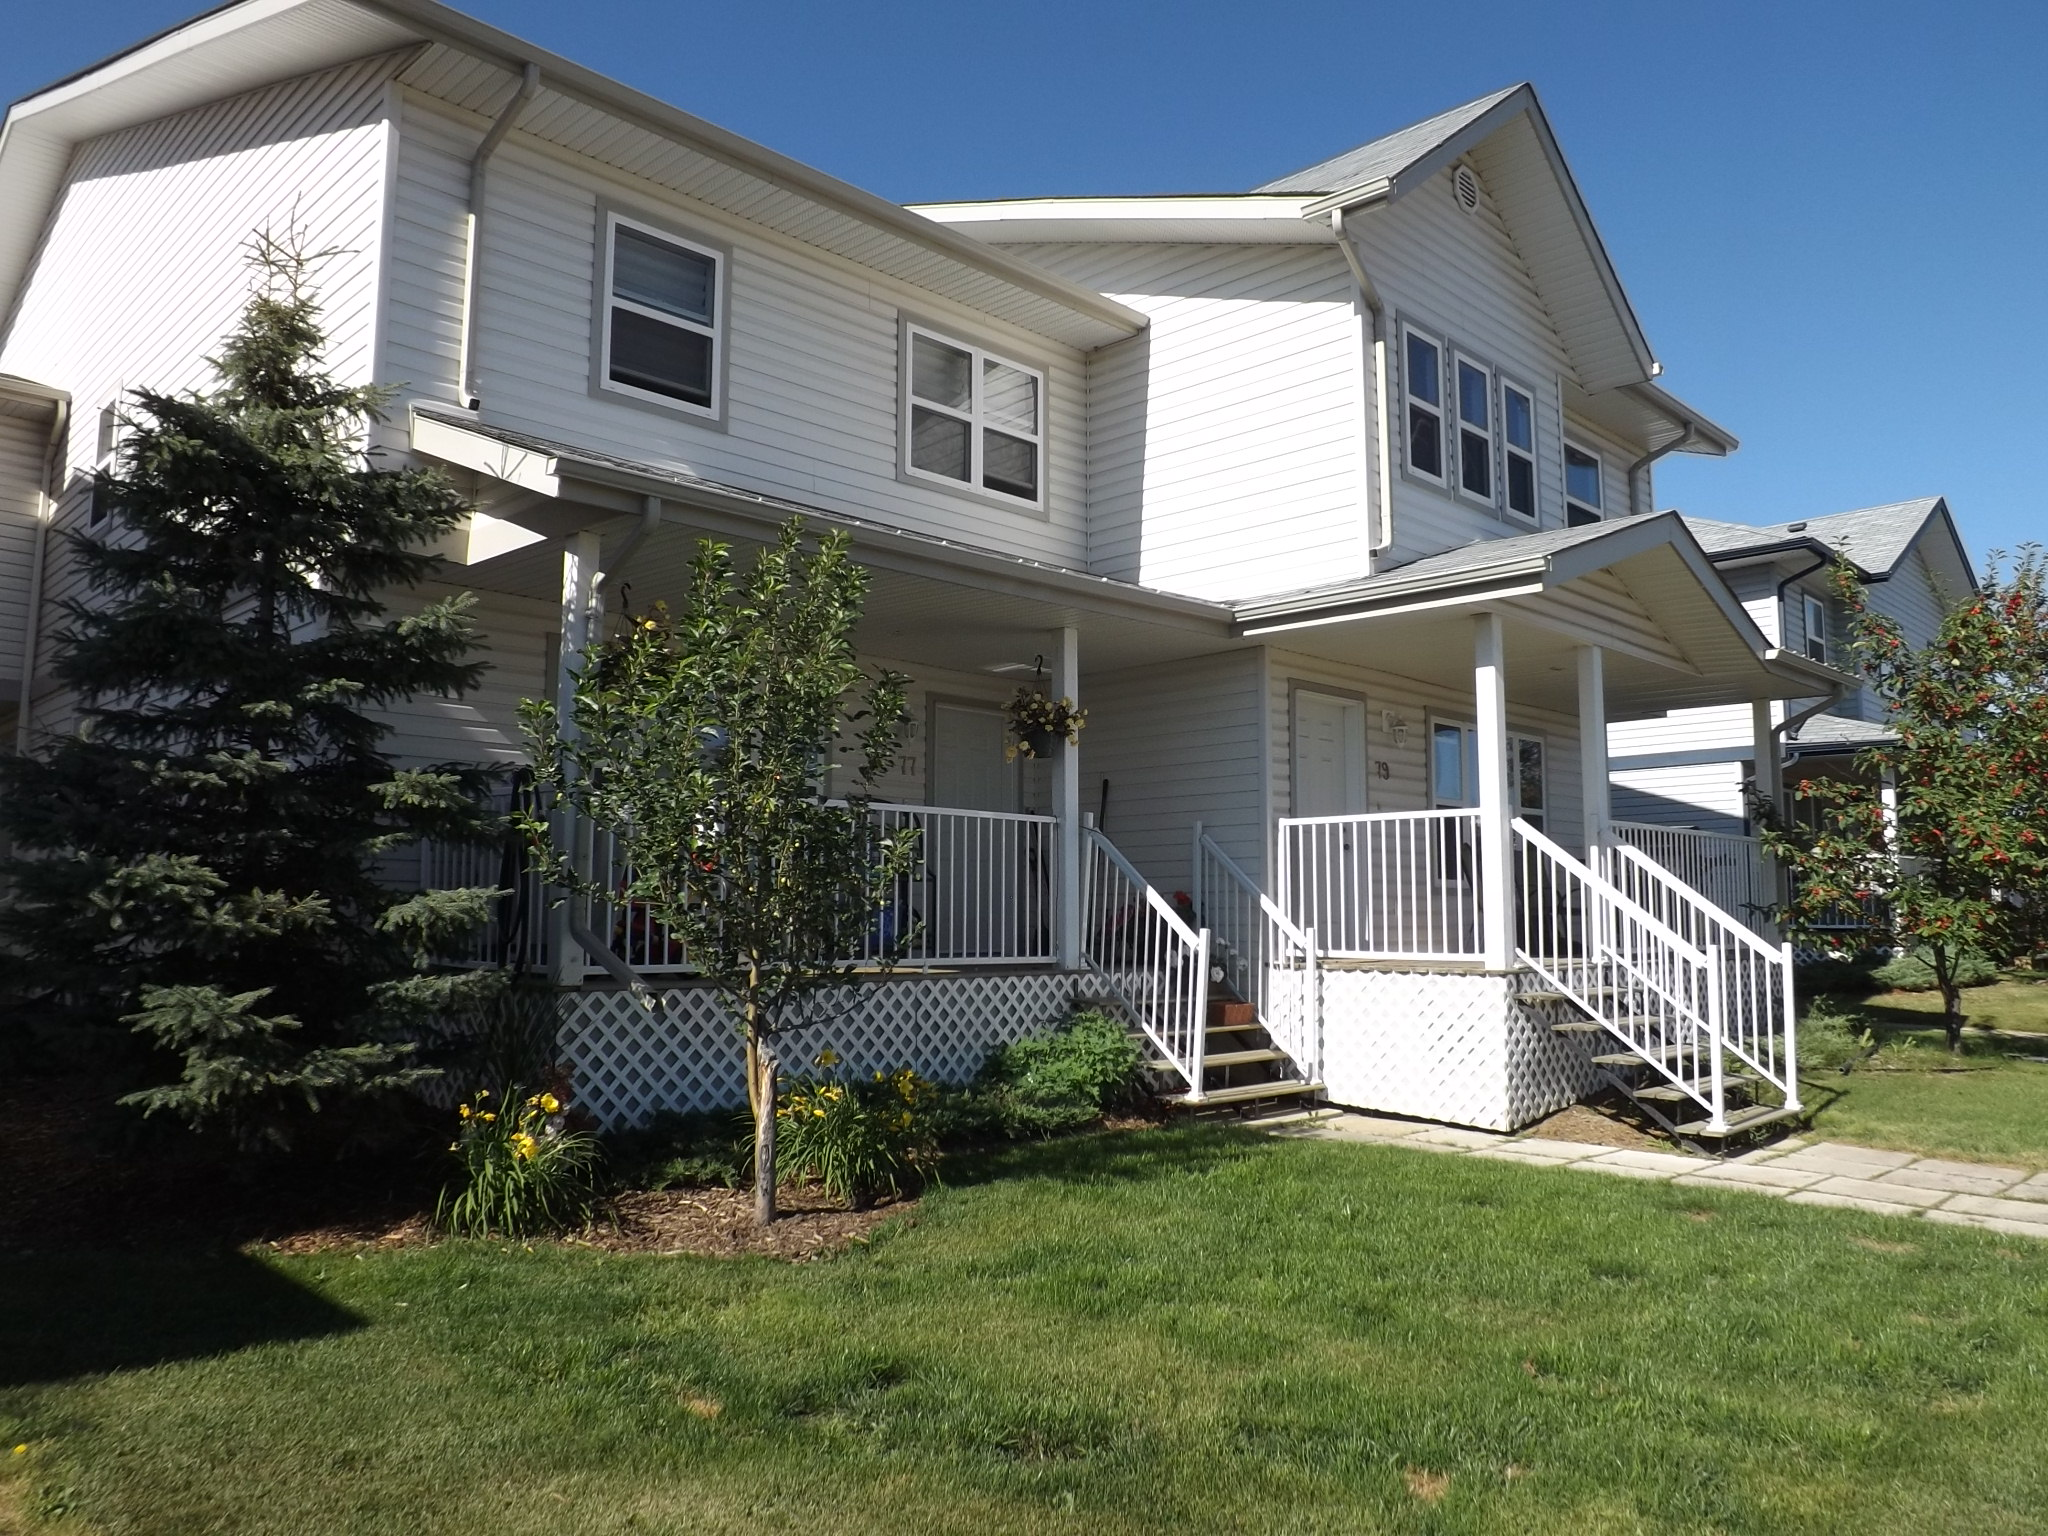 This is an example of a property located in Fort McMurray, Alberta where the Reserve Fund Study has been completed by Delta Appraisal Corporation